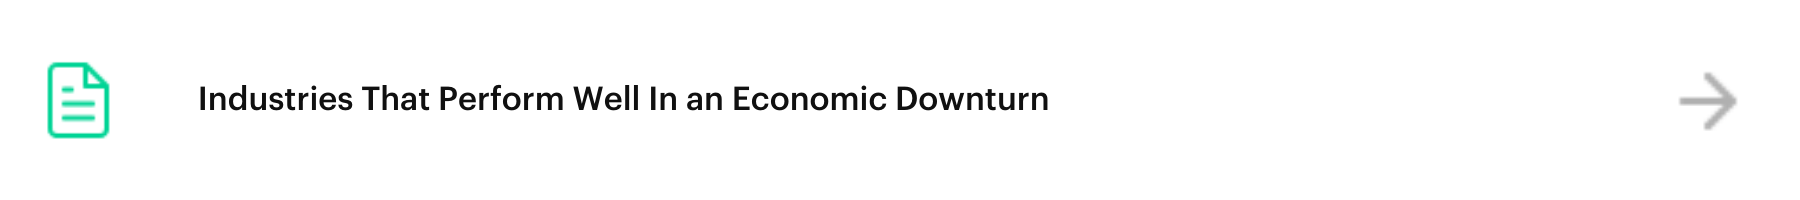 Related-article-about-economic-downturn